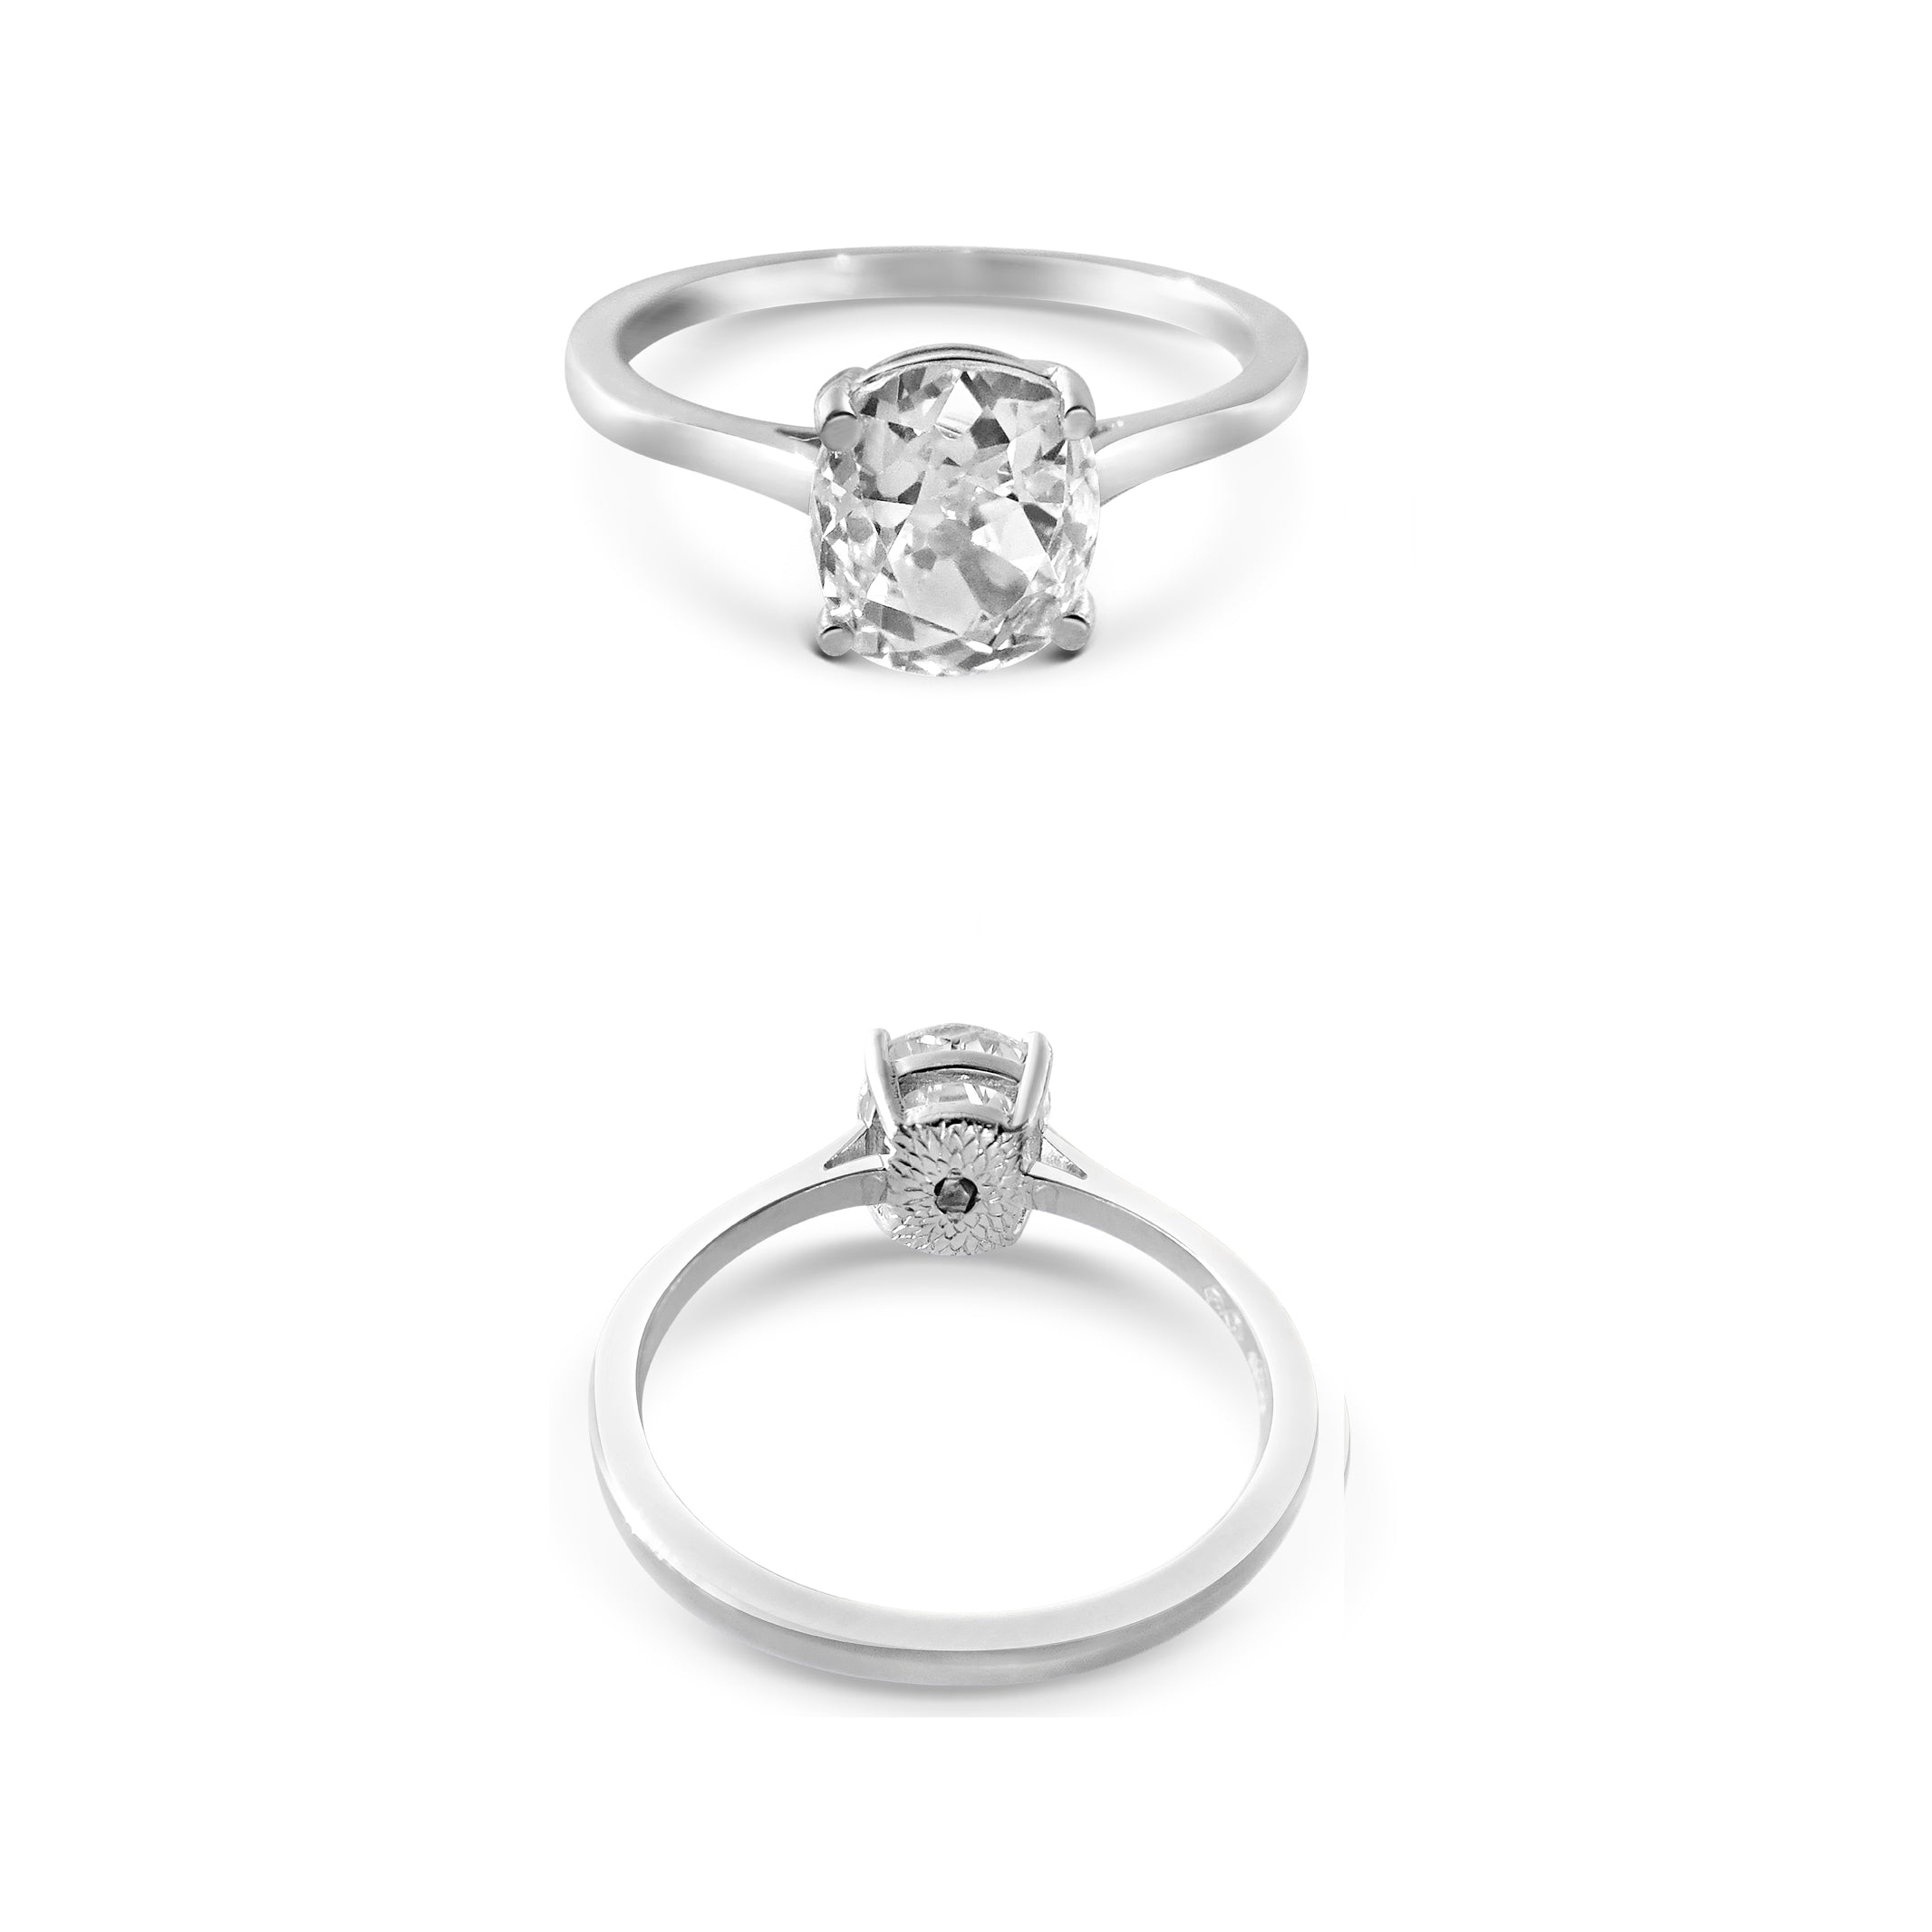 Old Mine Cut Diamond Platinum Engagement Ring with Protea Flower Hand Engraving and Rough Diamond Under Setting